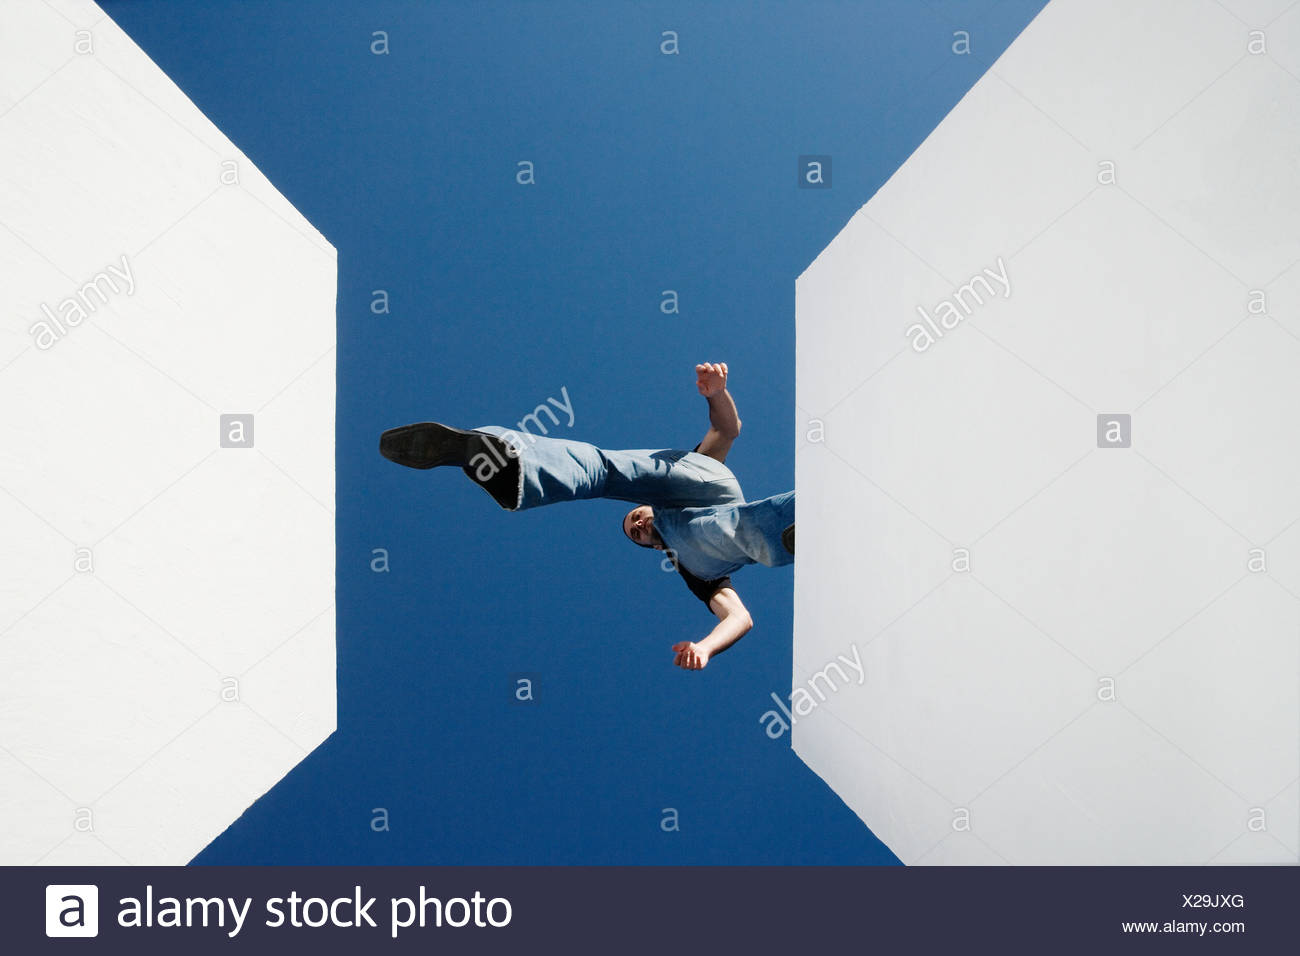 Low angle view of man walking across high gap outdoors - Stock Image